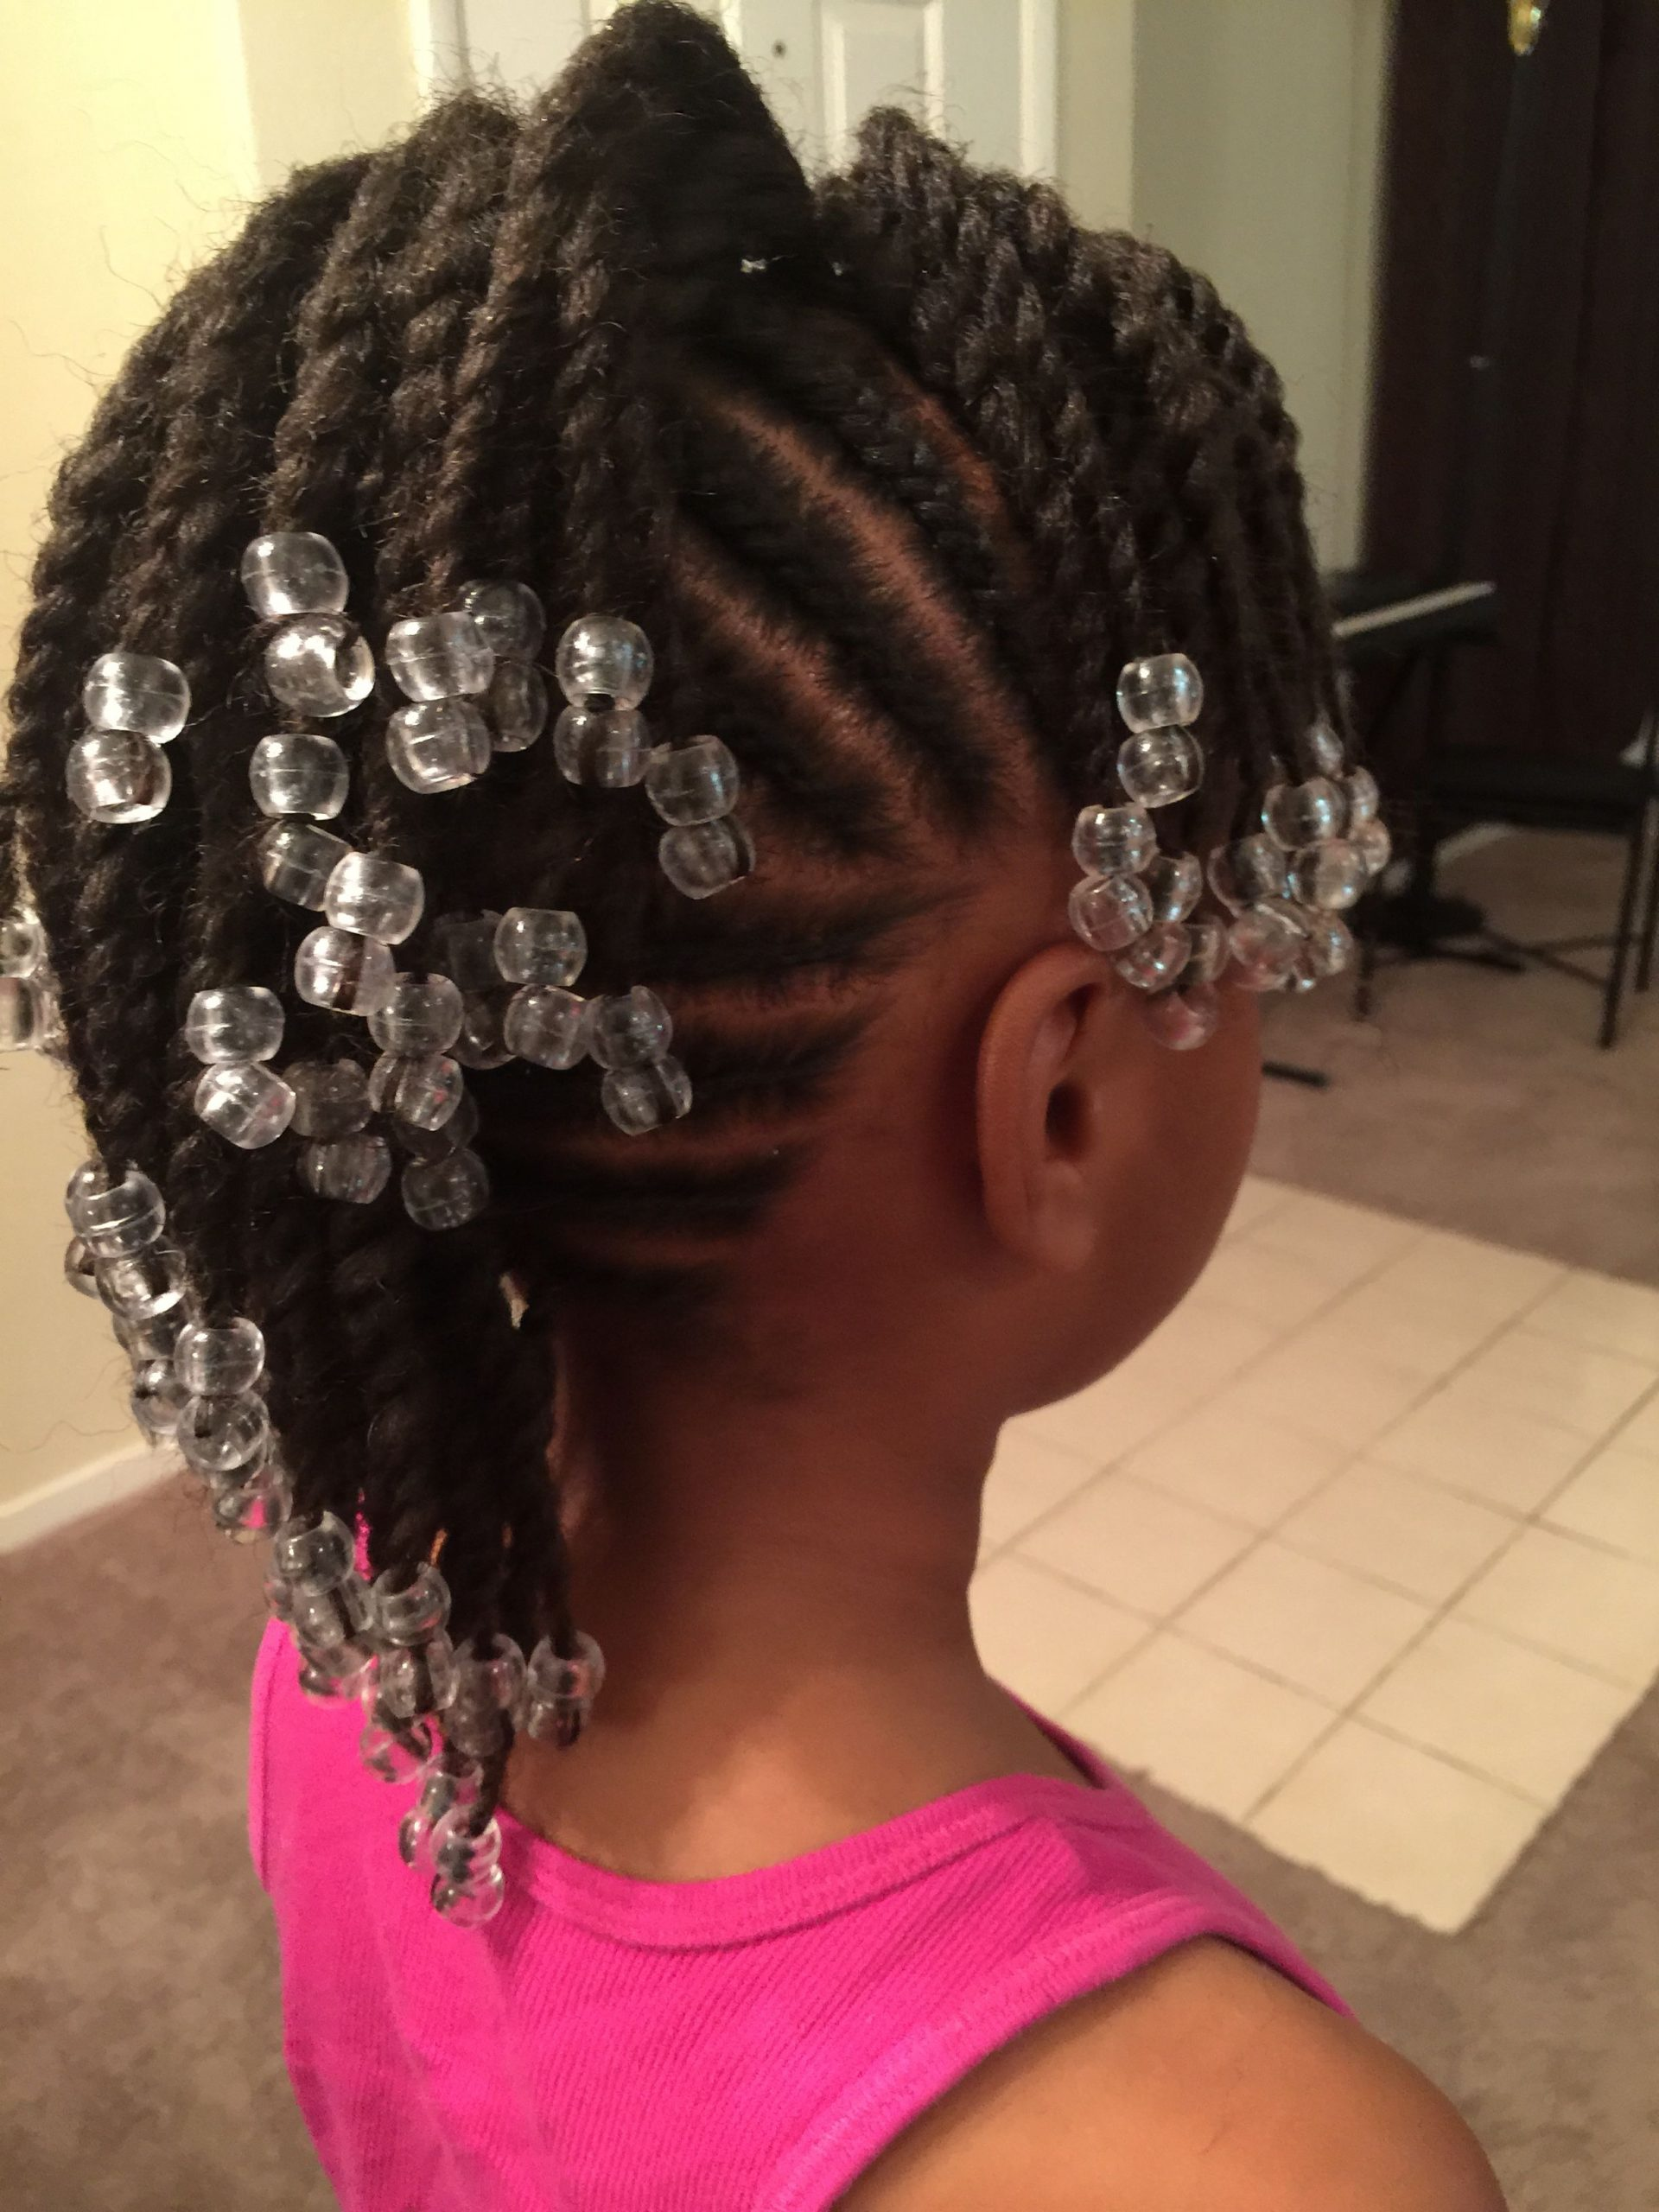 Cute hairstyles for kids hairstyleforblackwomen.net 146 scaled